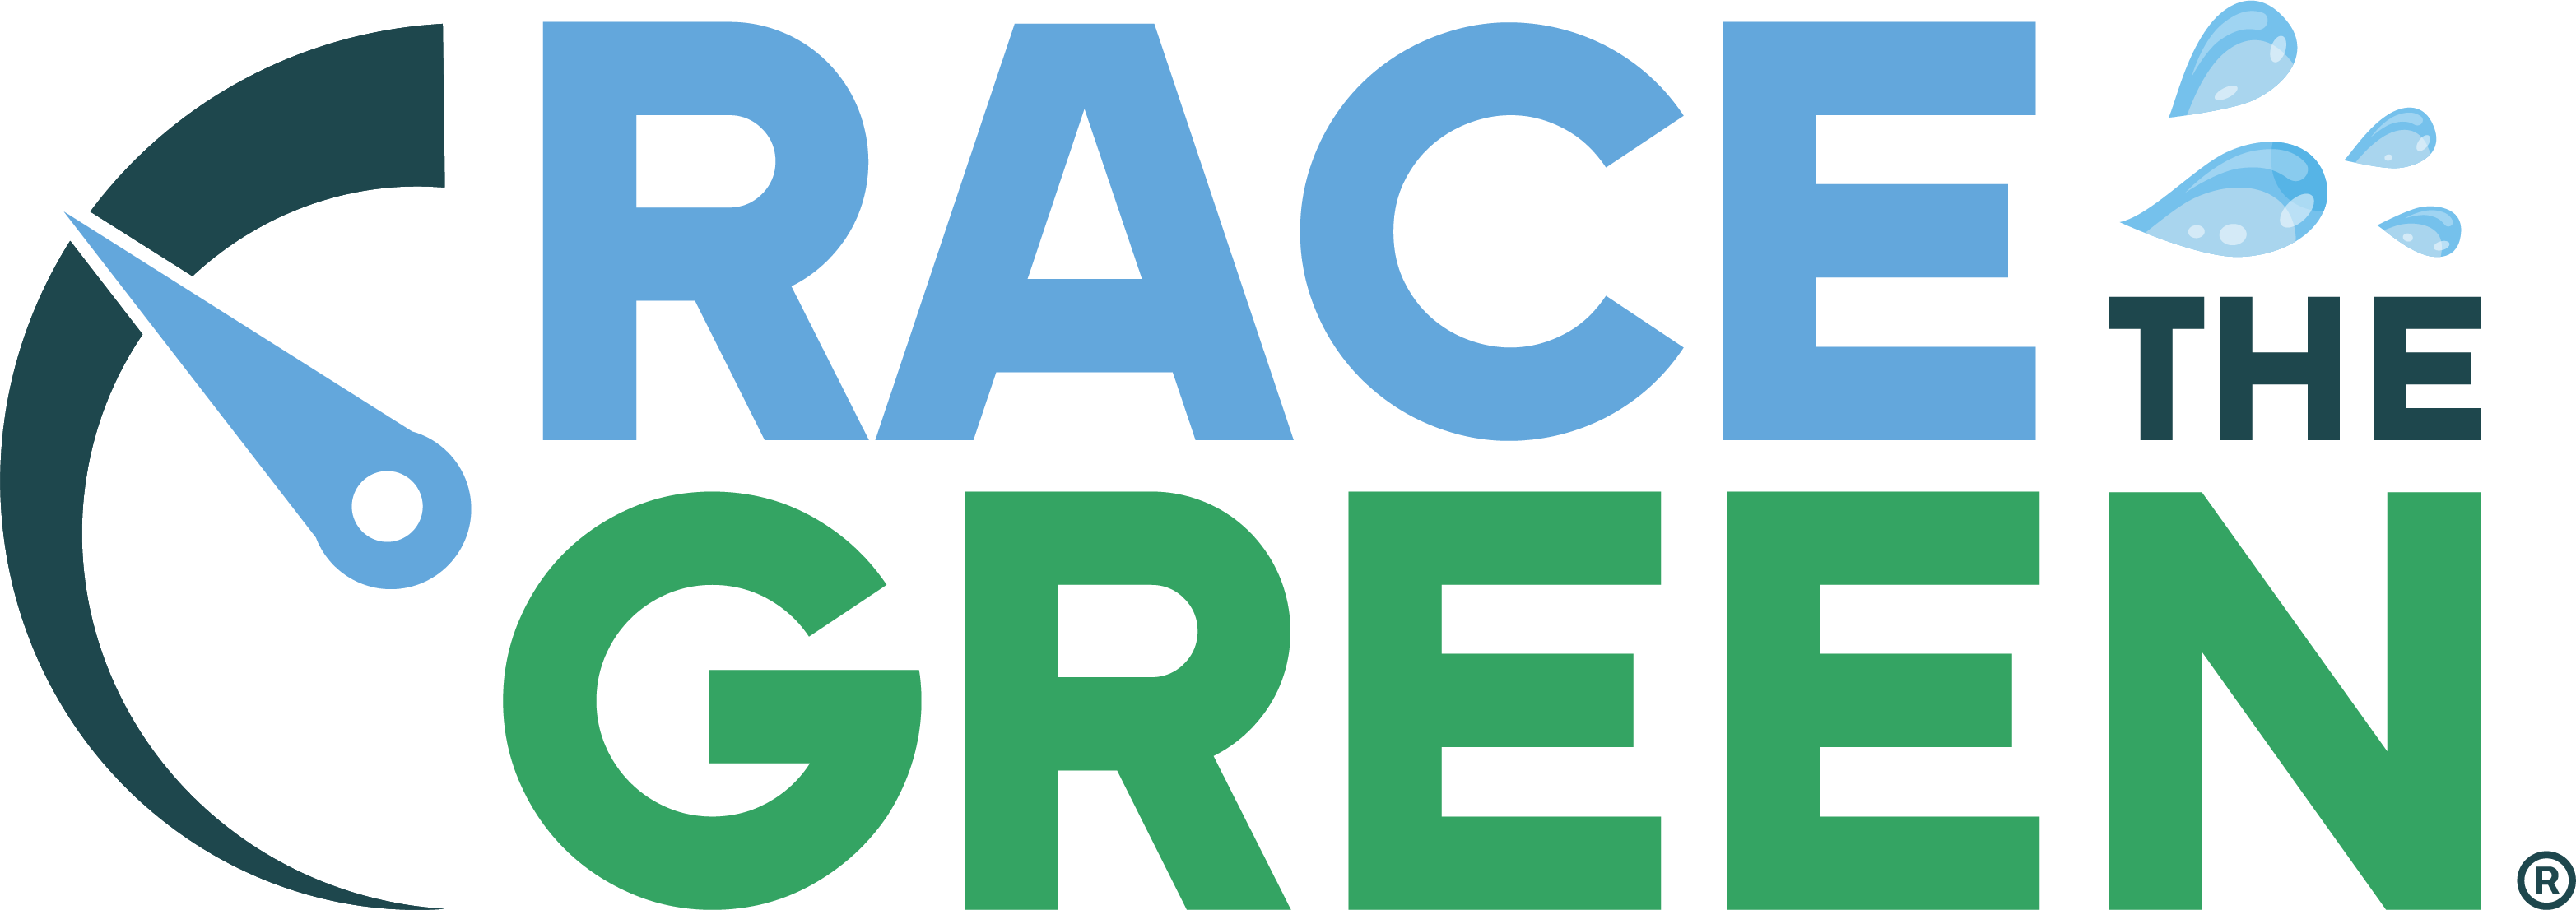 Race the Green